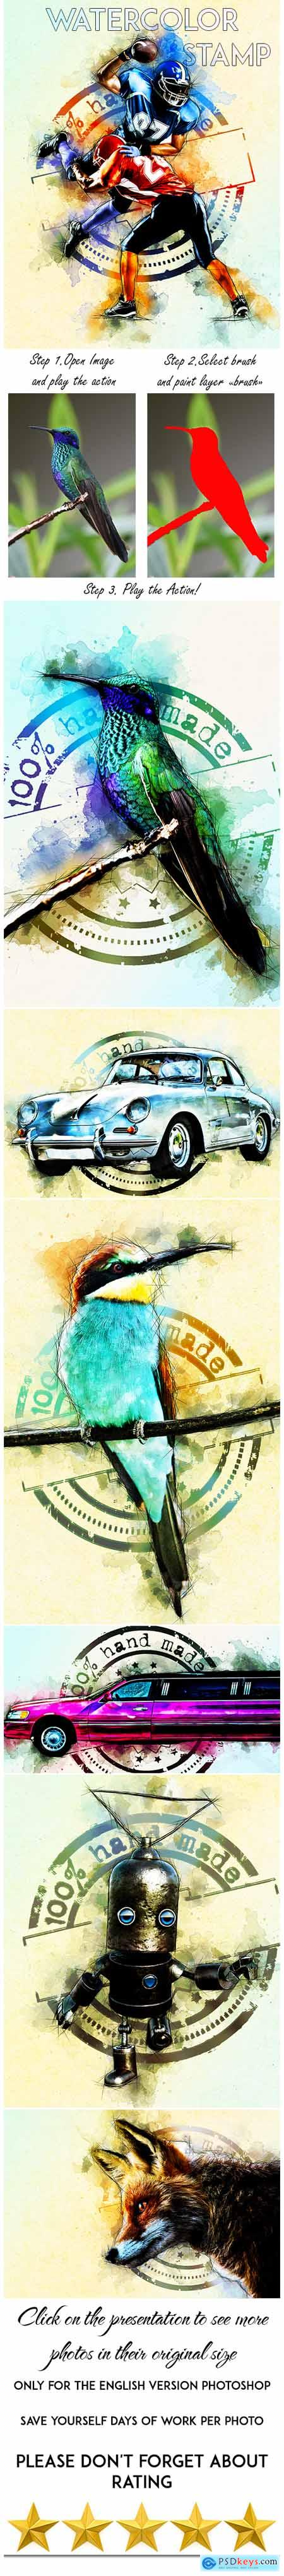 Watercolor Stamp Photoshop Action 25015853